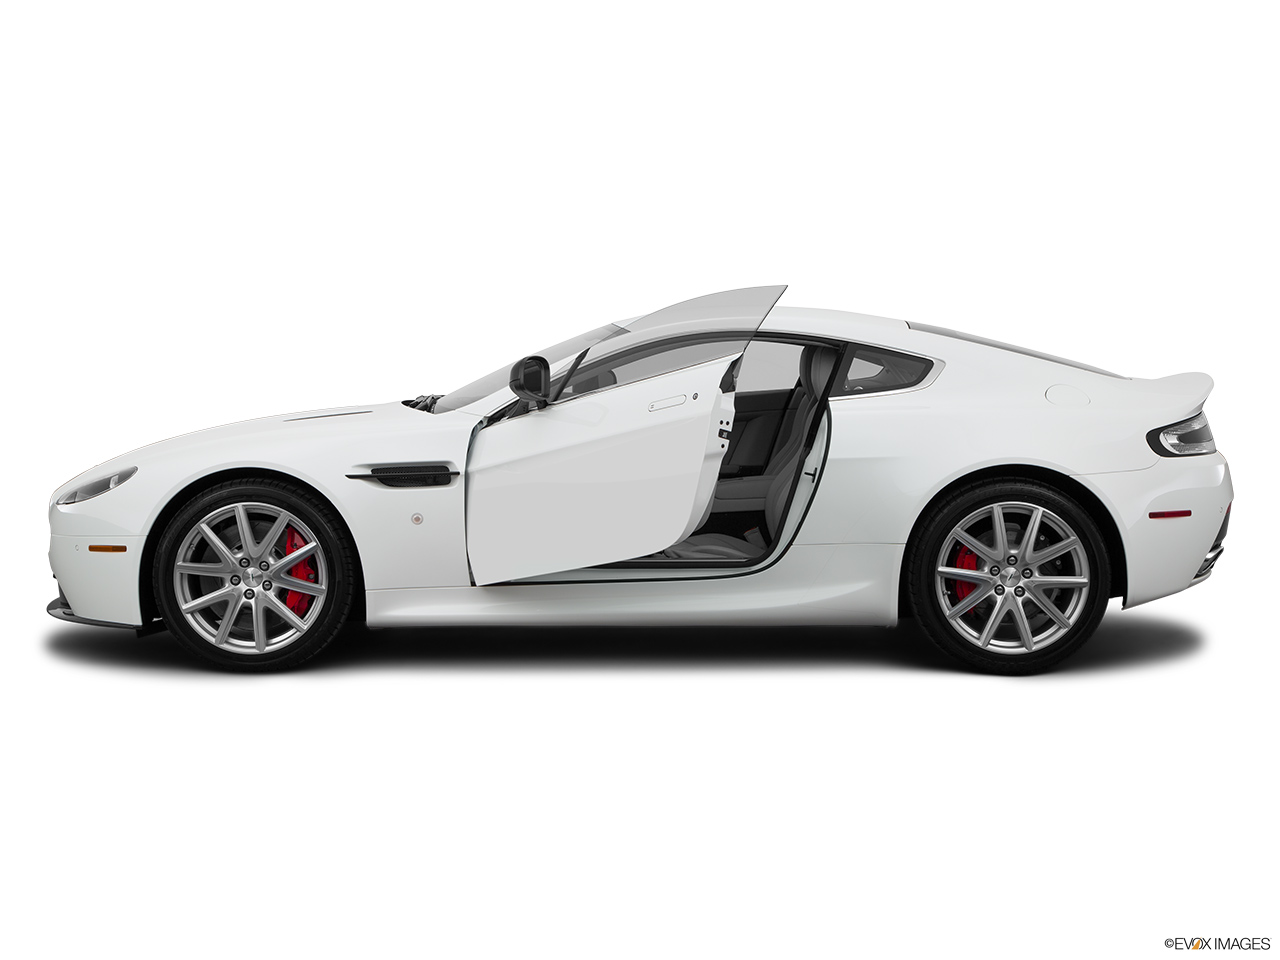 2015 Aston Martin V8 Vantage Coupe - Driver\u0027s side profile with drivers side door open